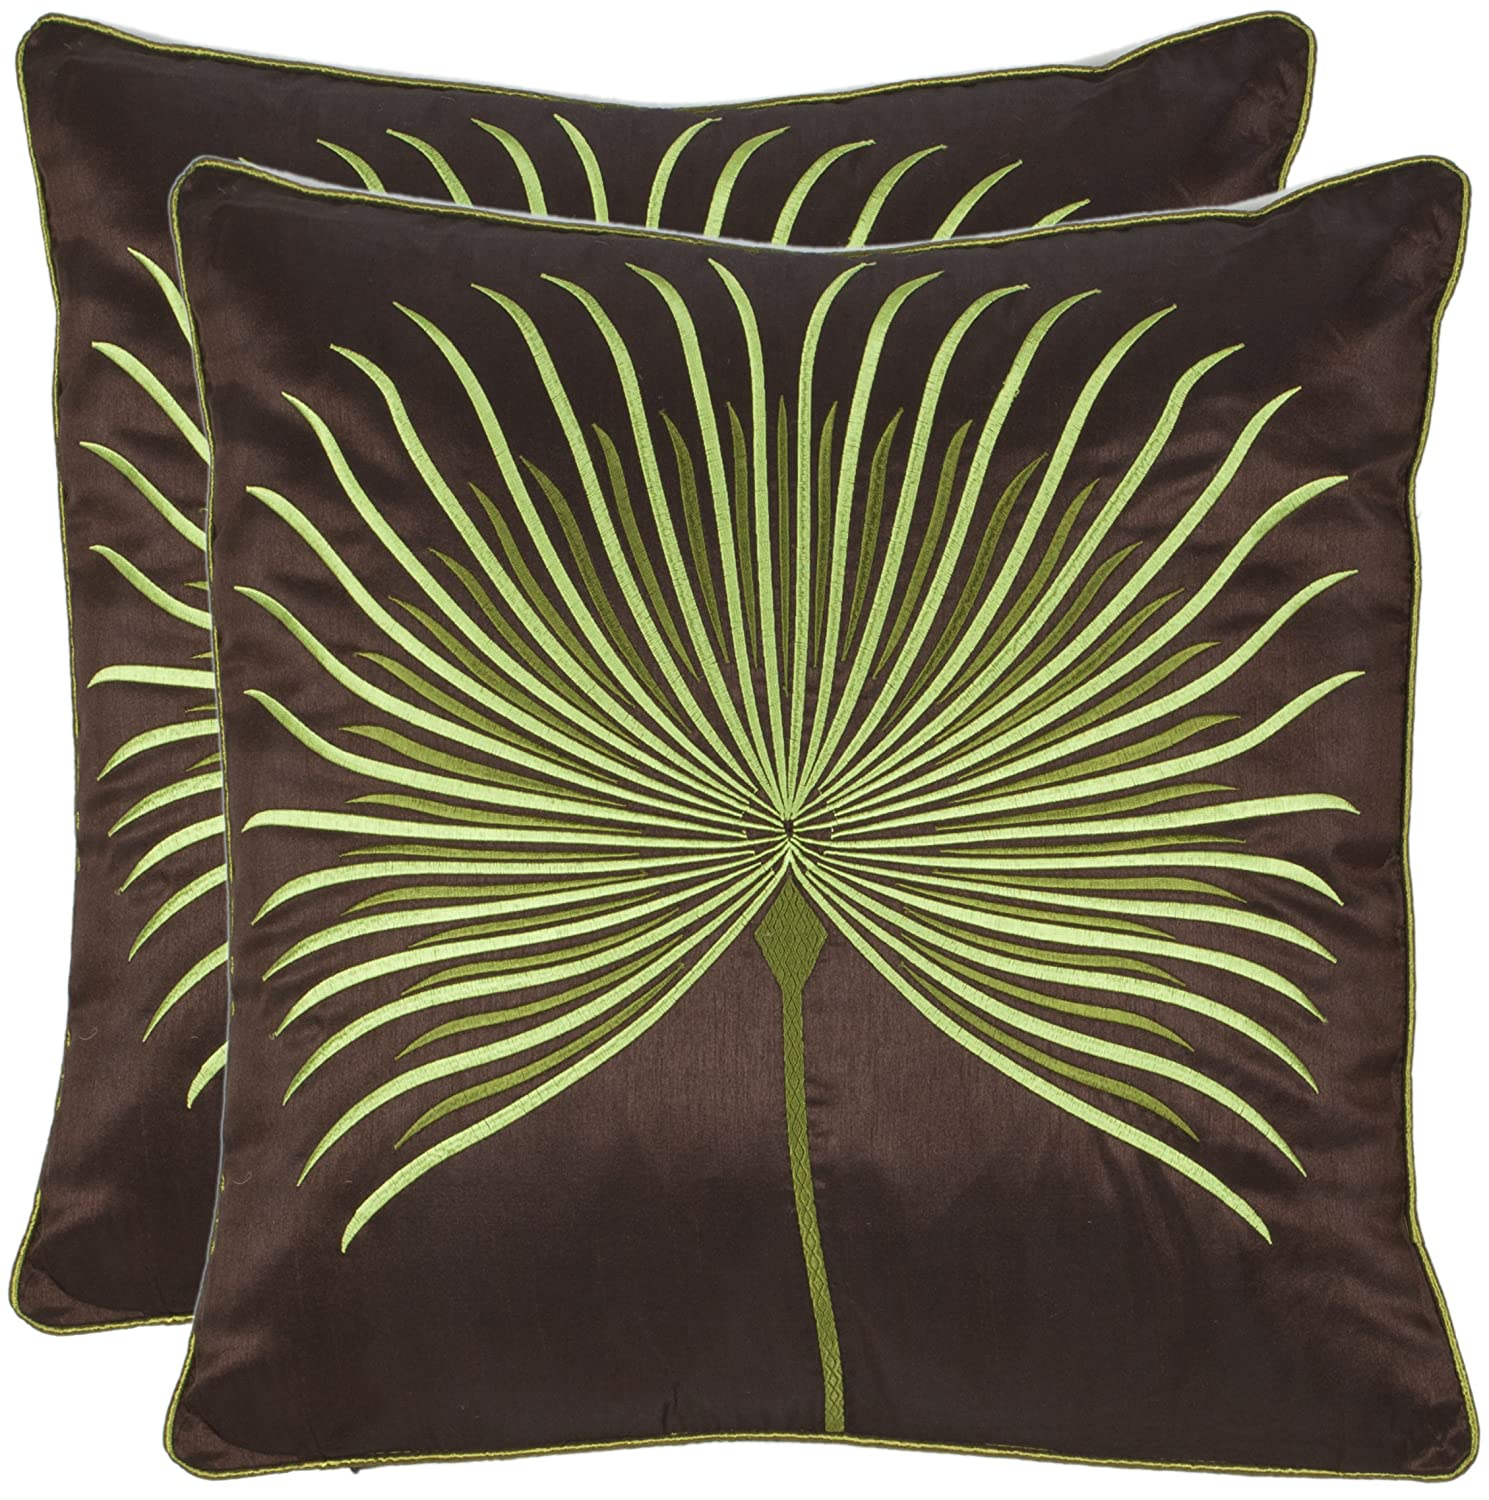 amazoncom safavieh pillow collection inch dandelion pillow  - amazoncom safavieh pillow collection inch dandelion pillow brown andgreen set of  home  kitchen